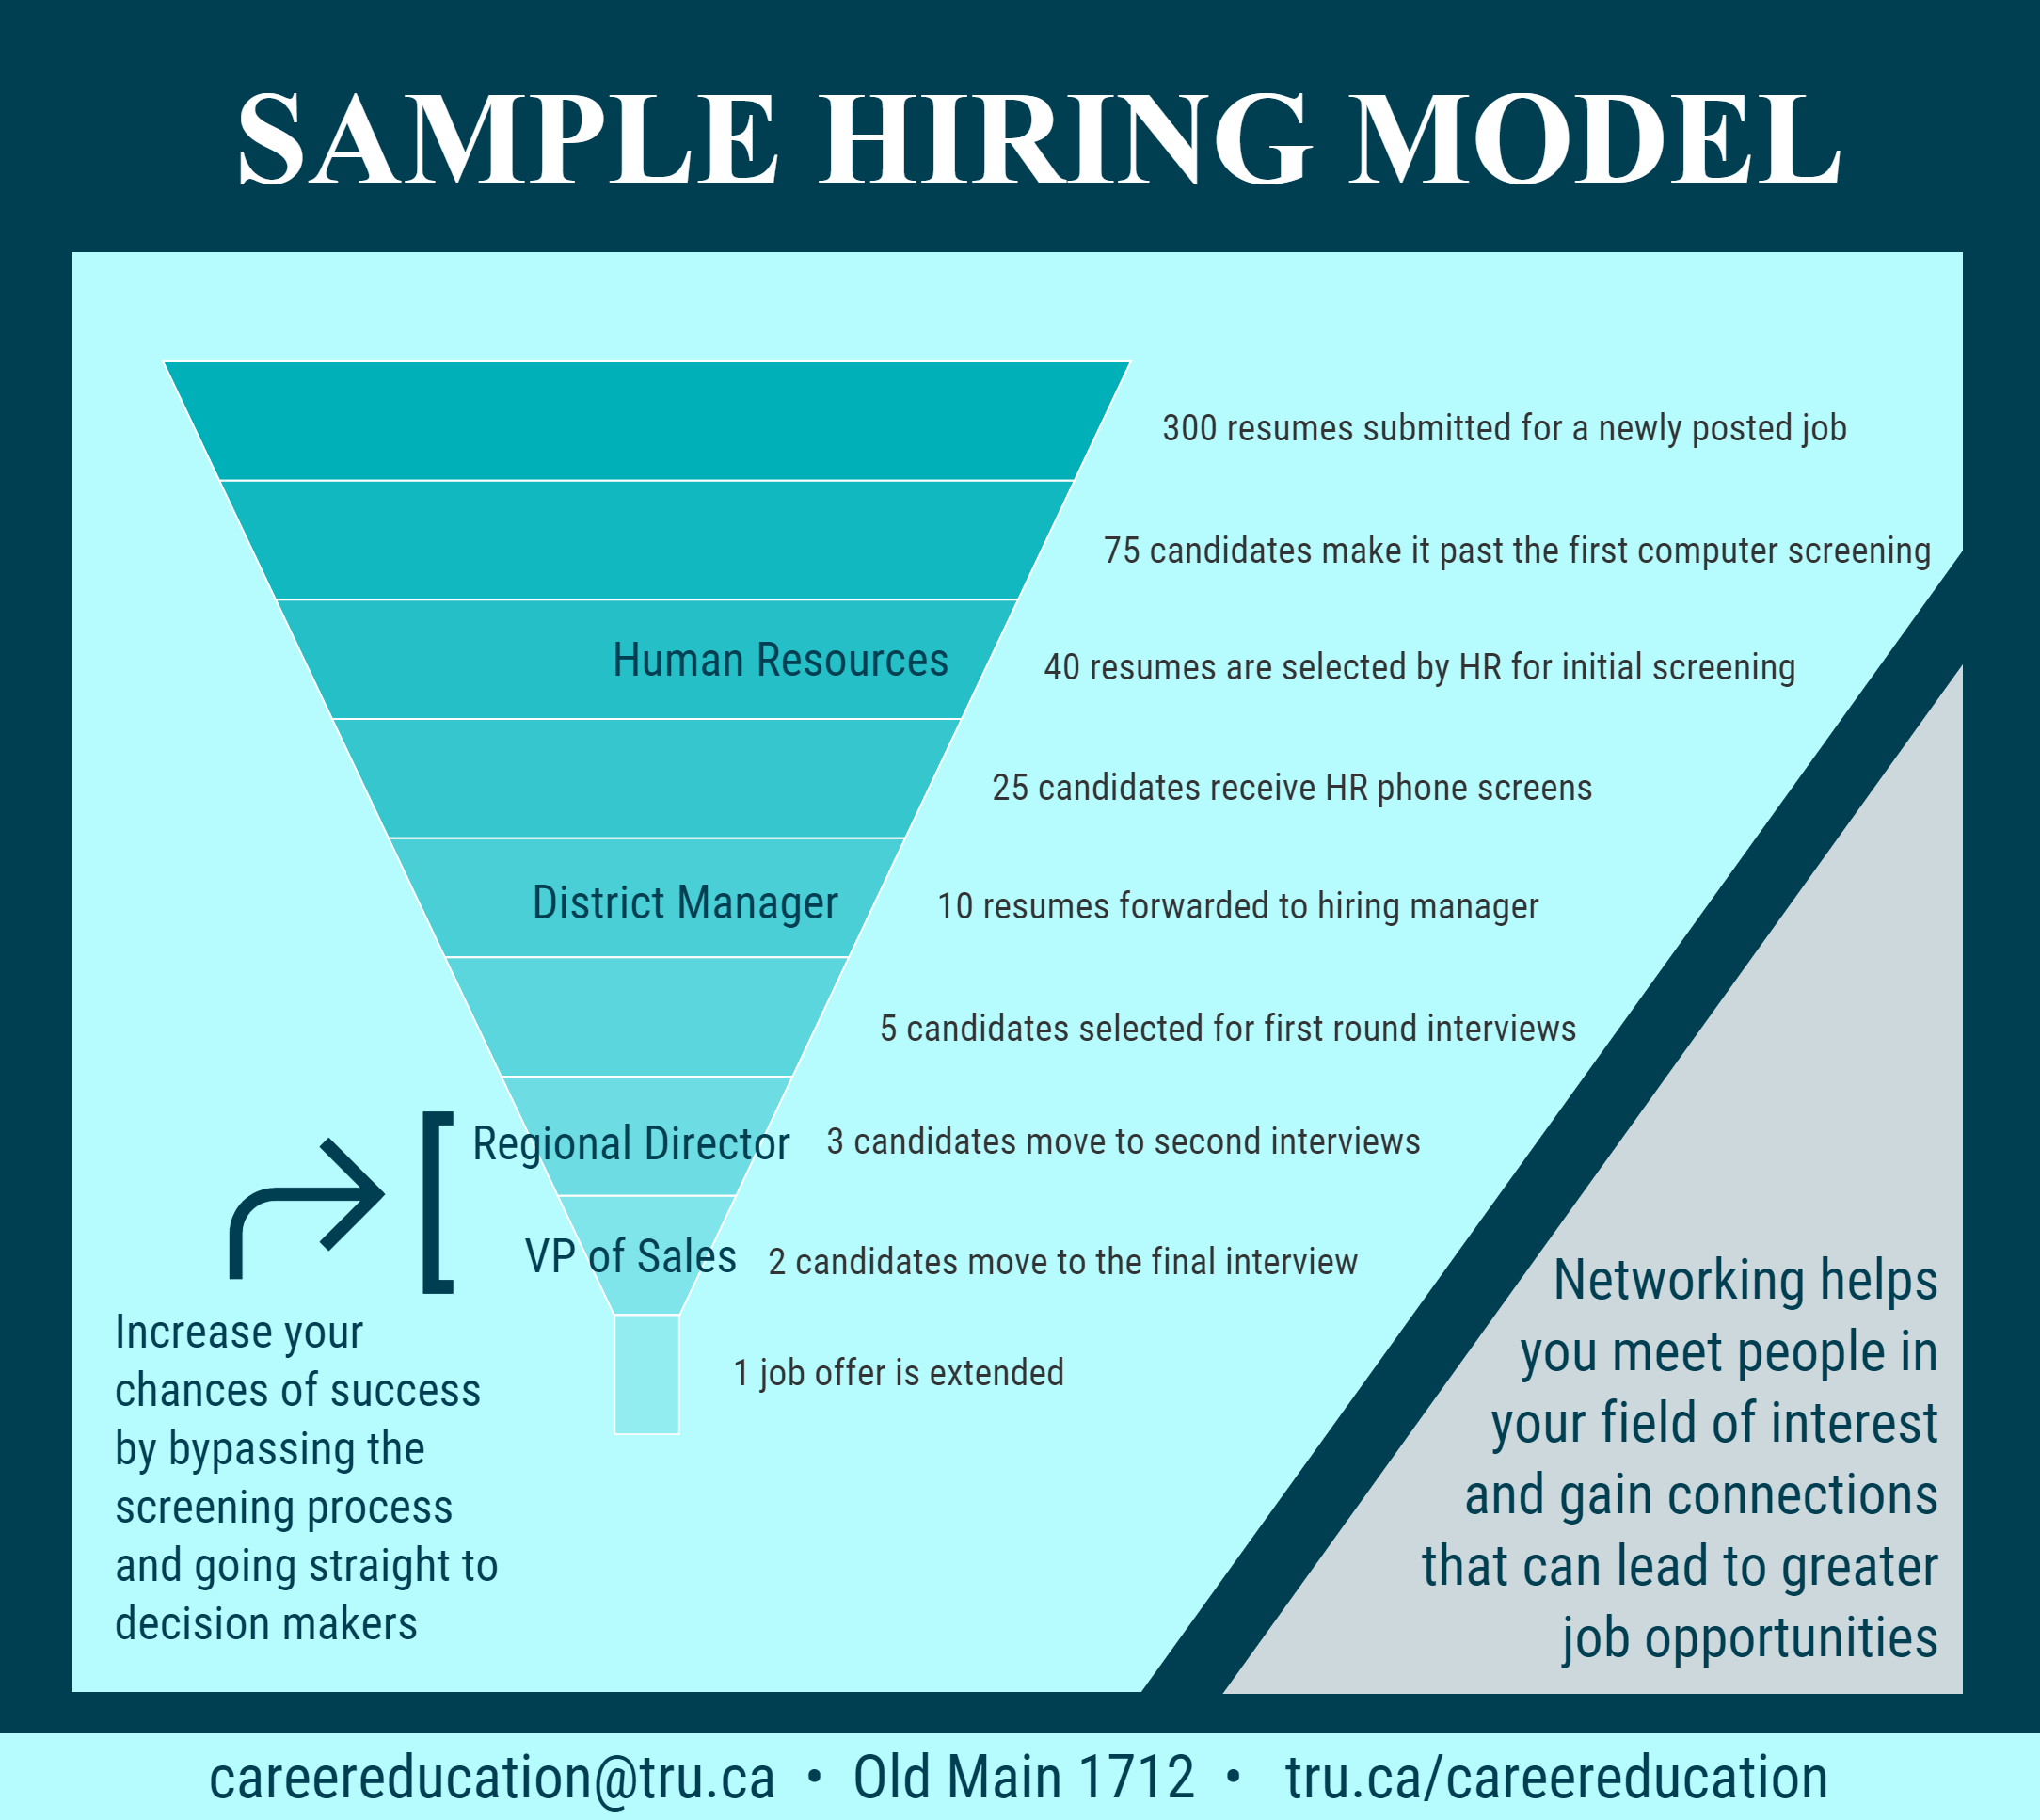 Networking Hiring Model